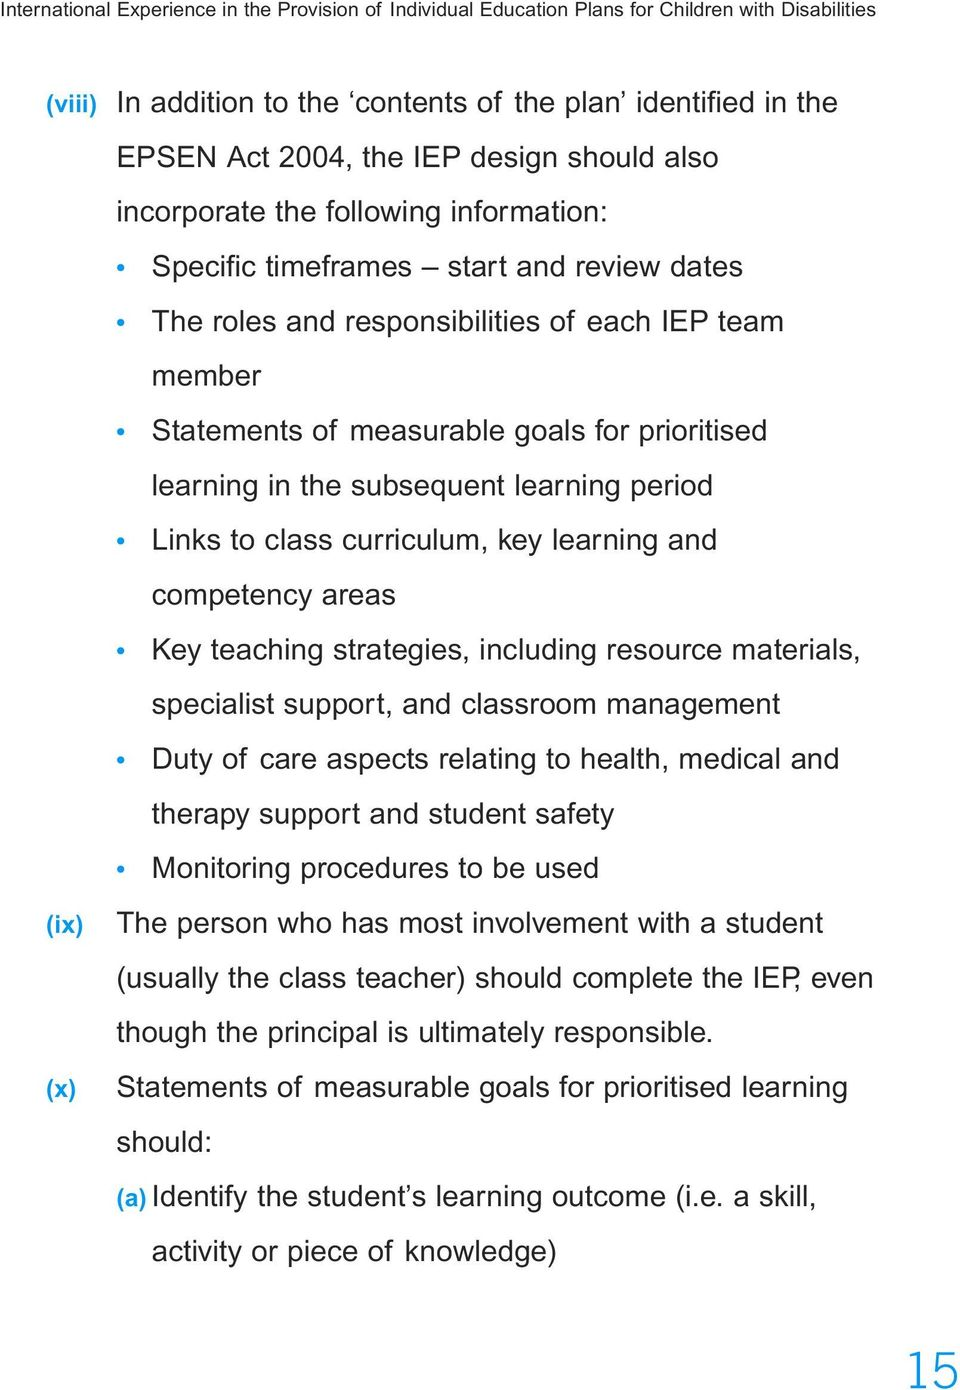 prioritised learning in the subsequent learning period Links to class curriculum, key learning and competency areas Key teaching strategies, including resource materials, specialist support, and